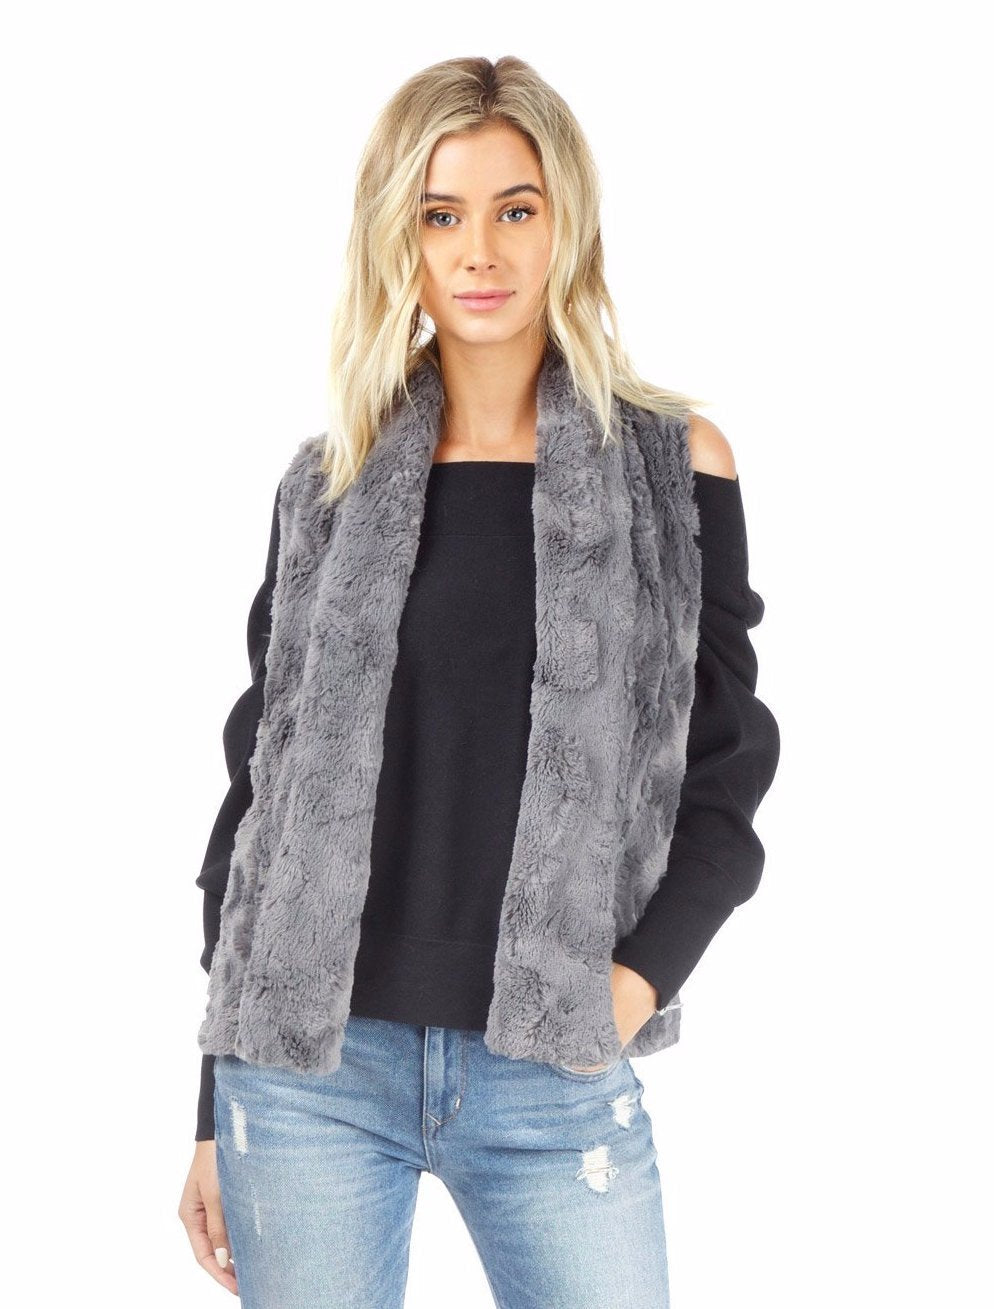 Women outfit in a vest rental from BB Dakota called Jack By Bb Dakota Cheerio Faux Fur Vest